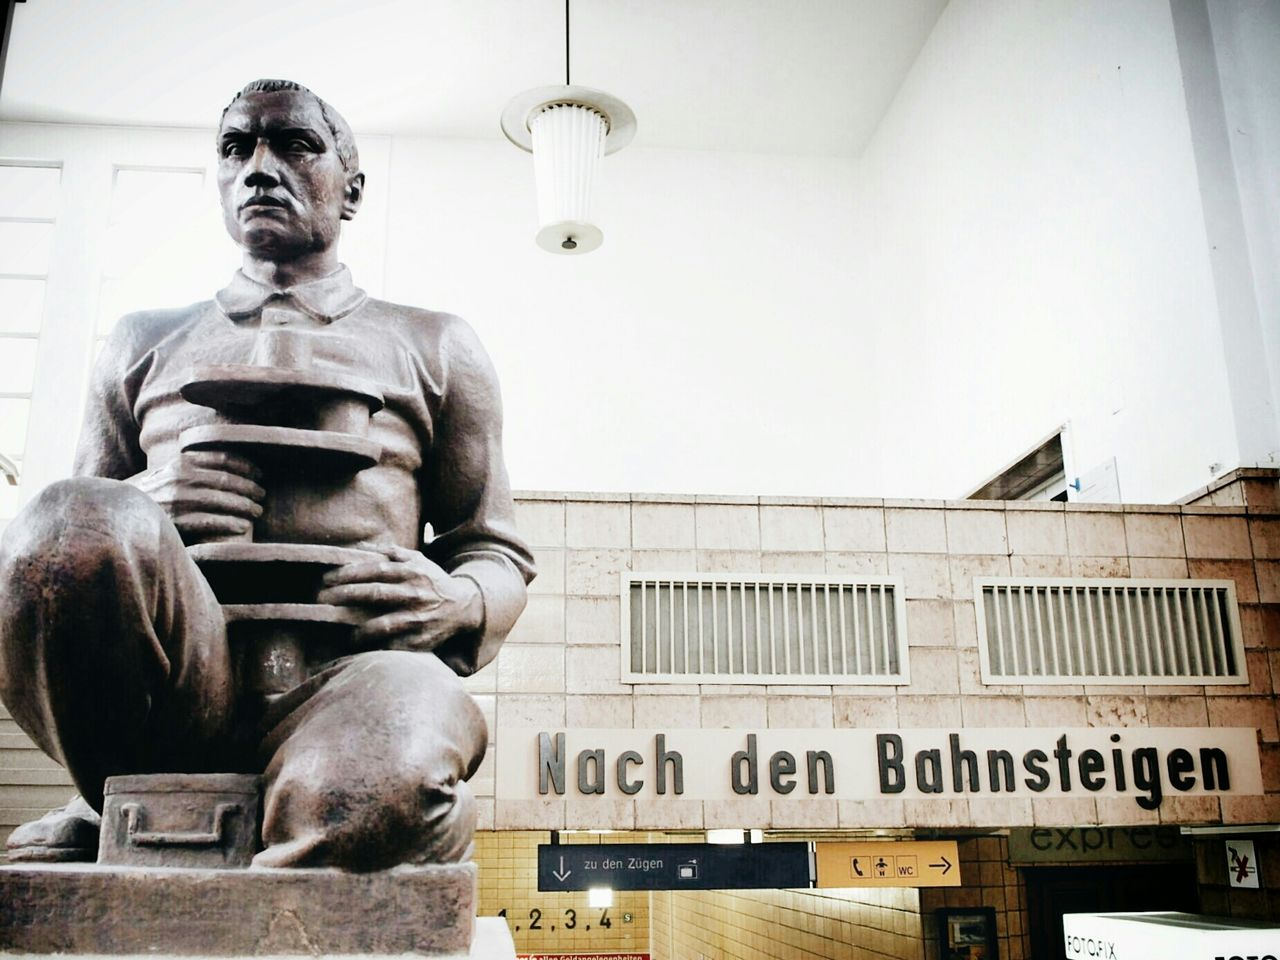 Low angle view of statue at zwickau hauptbahnhof